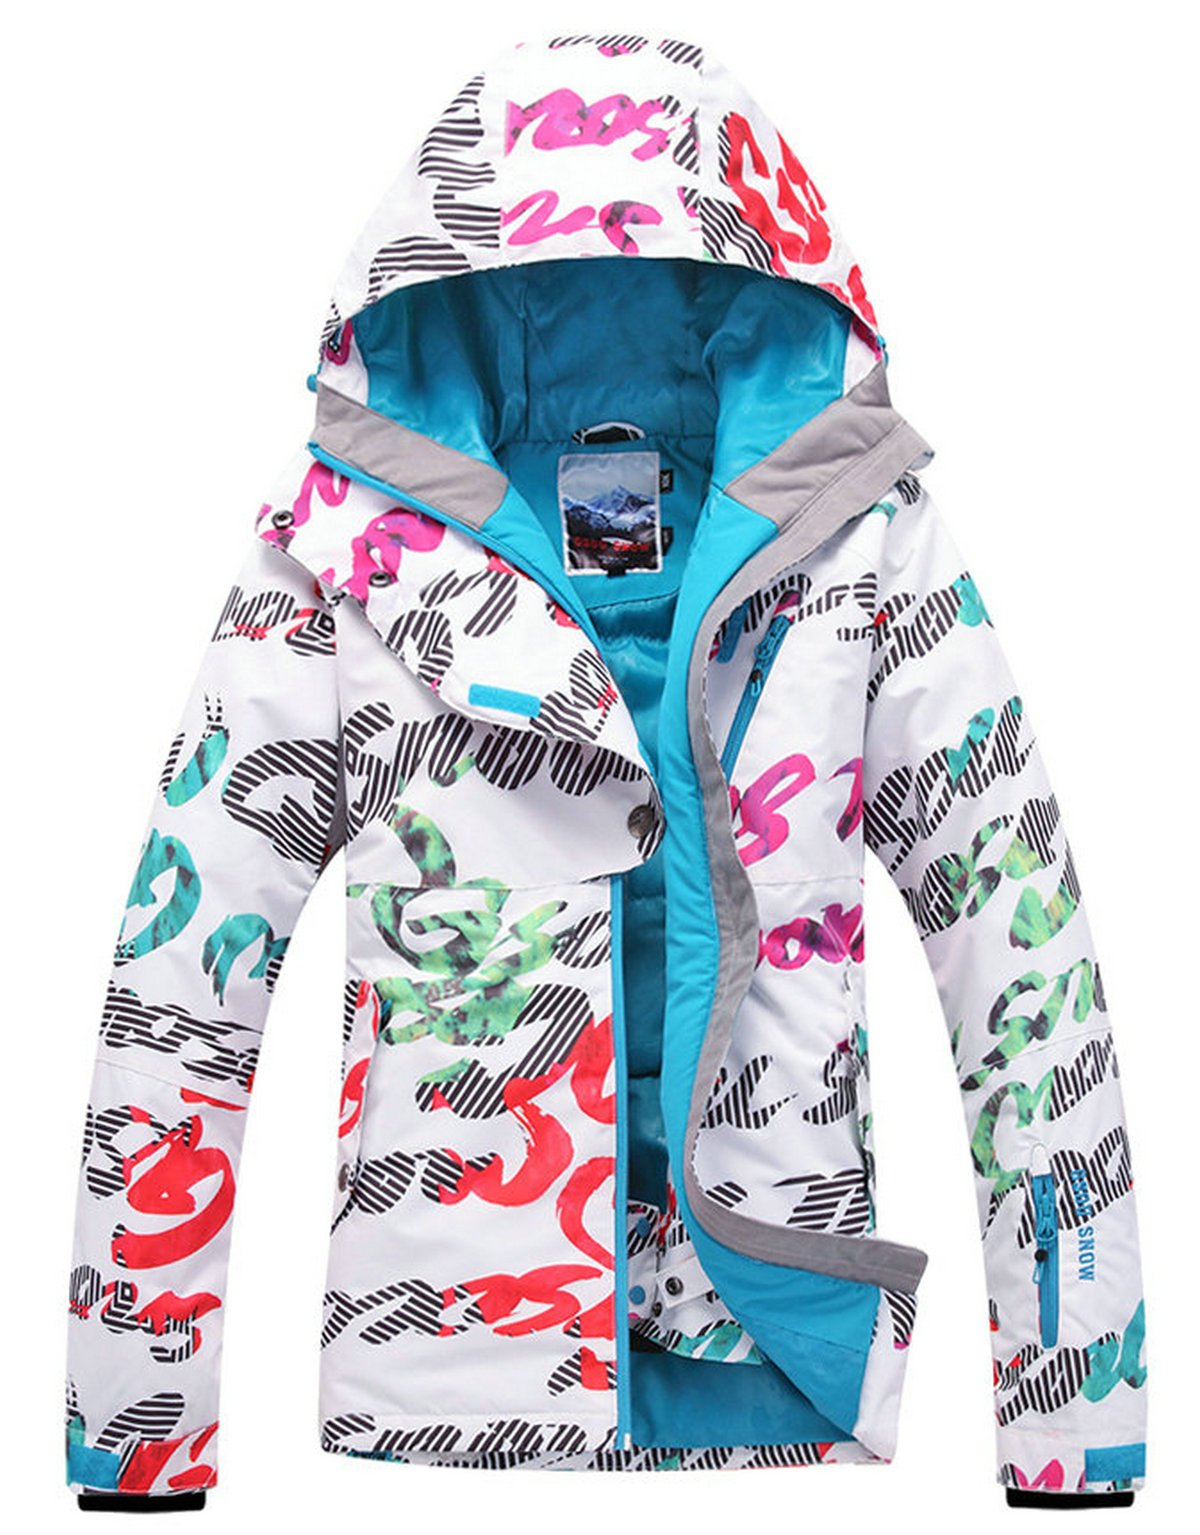 APTRO Women's High Windproof Technology Colorfull Printed Ski Jacket Style #11 Size S